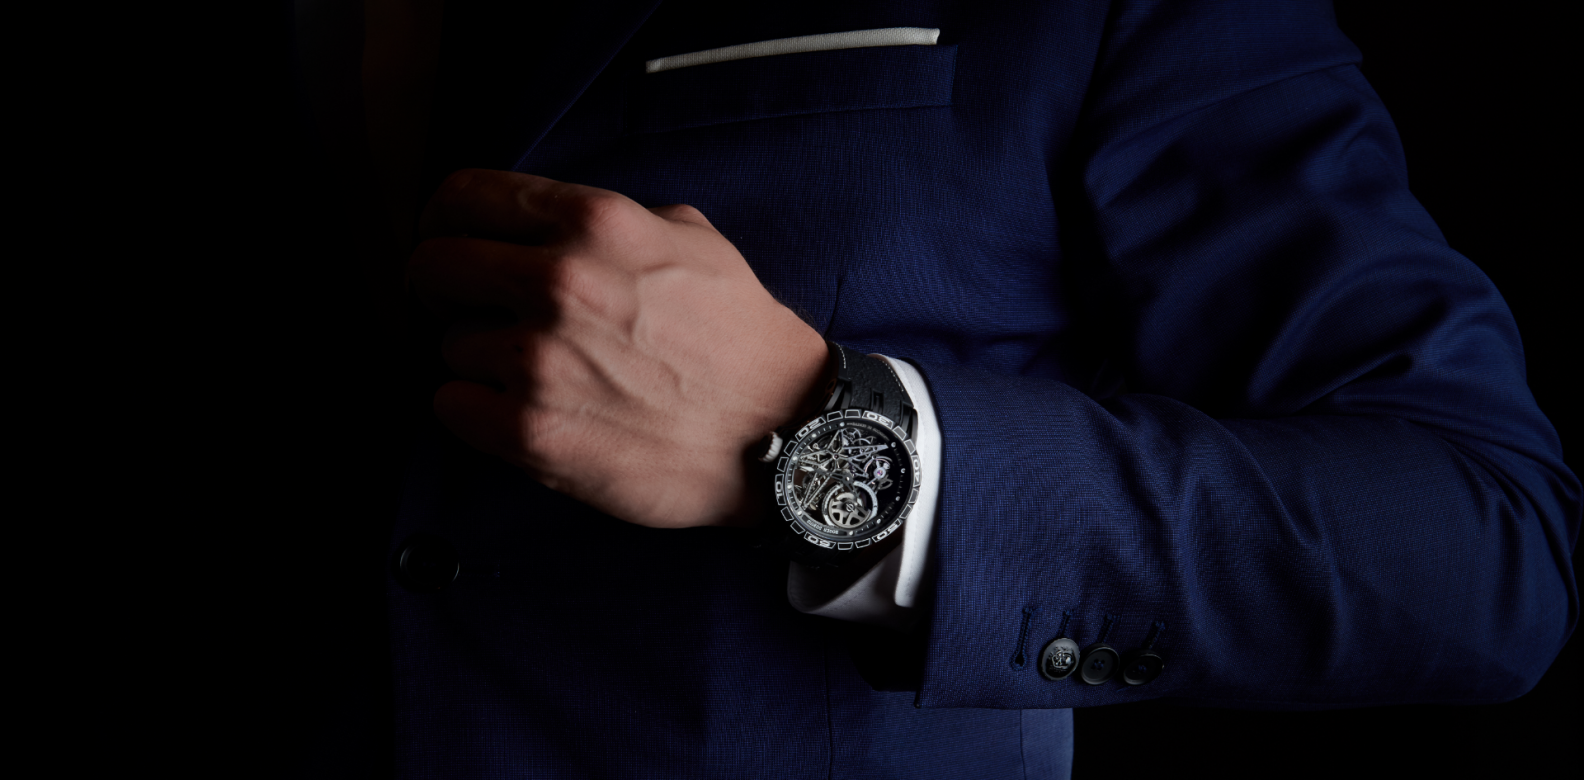 How The World Of Supercars Inspired These Exquisite Timepieces